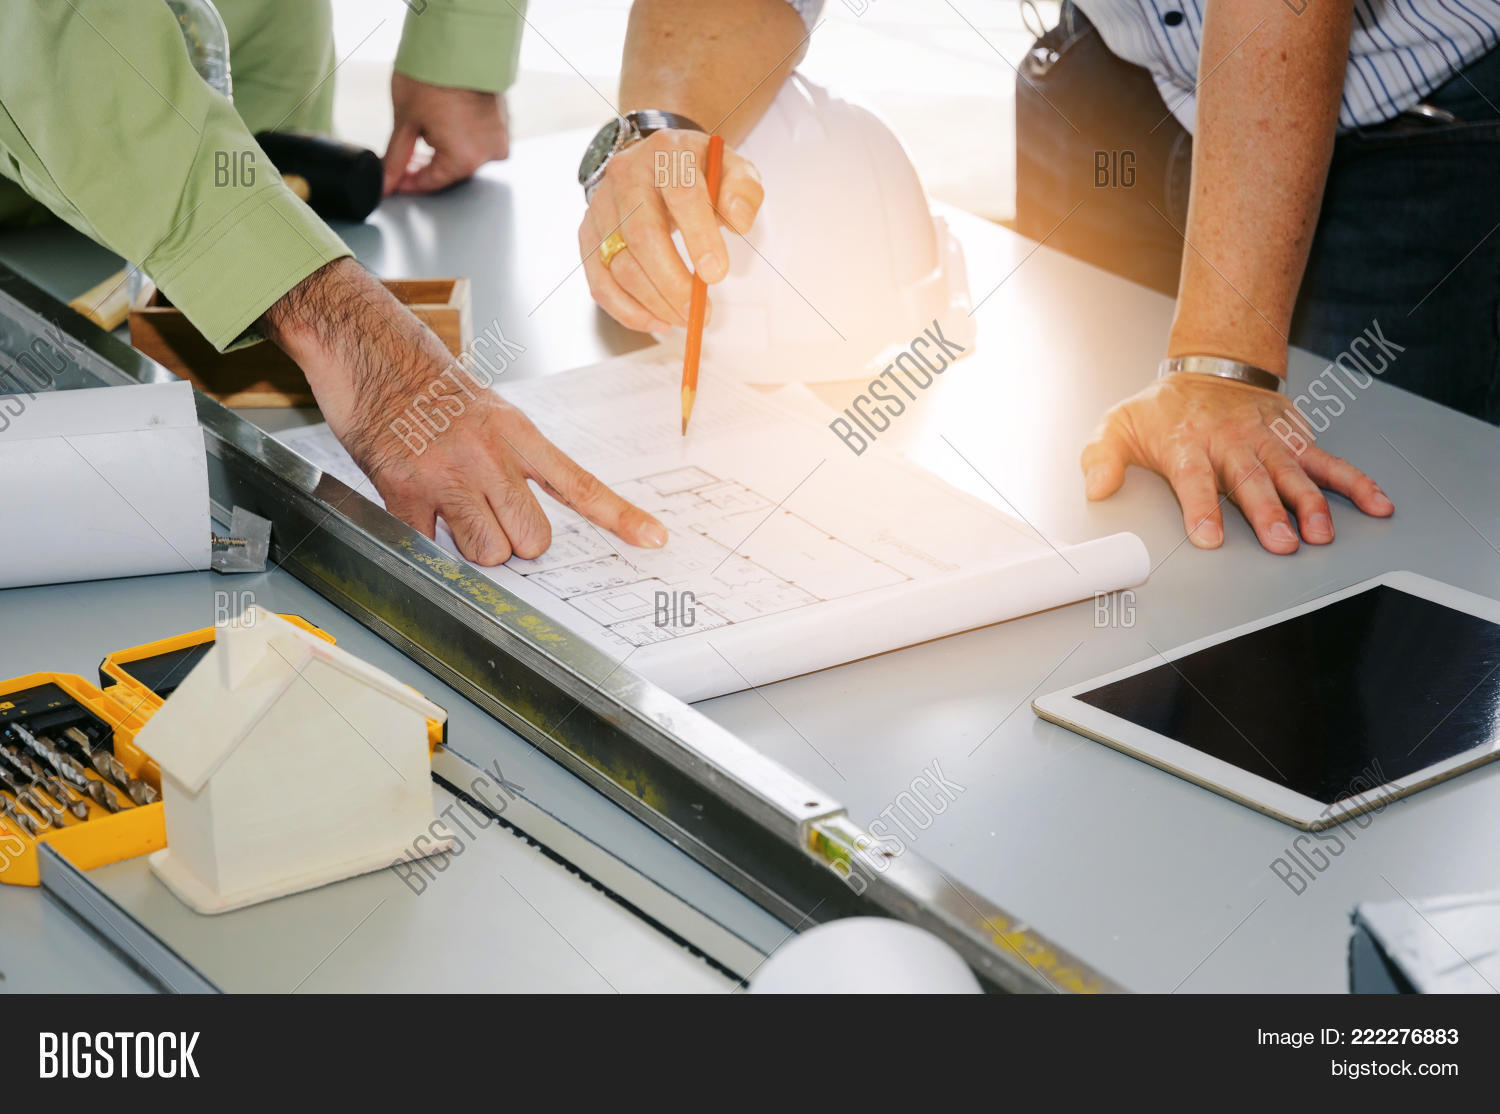 Engineer technician architect image photo bigstock engineer technician and architect planning about building plan with blueprint safety helmet construction malvernweather Images